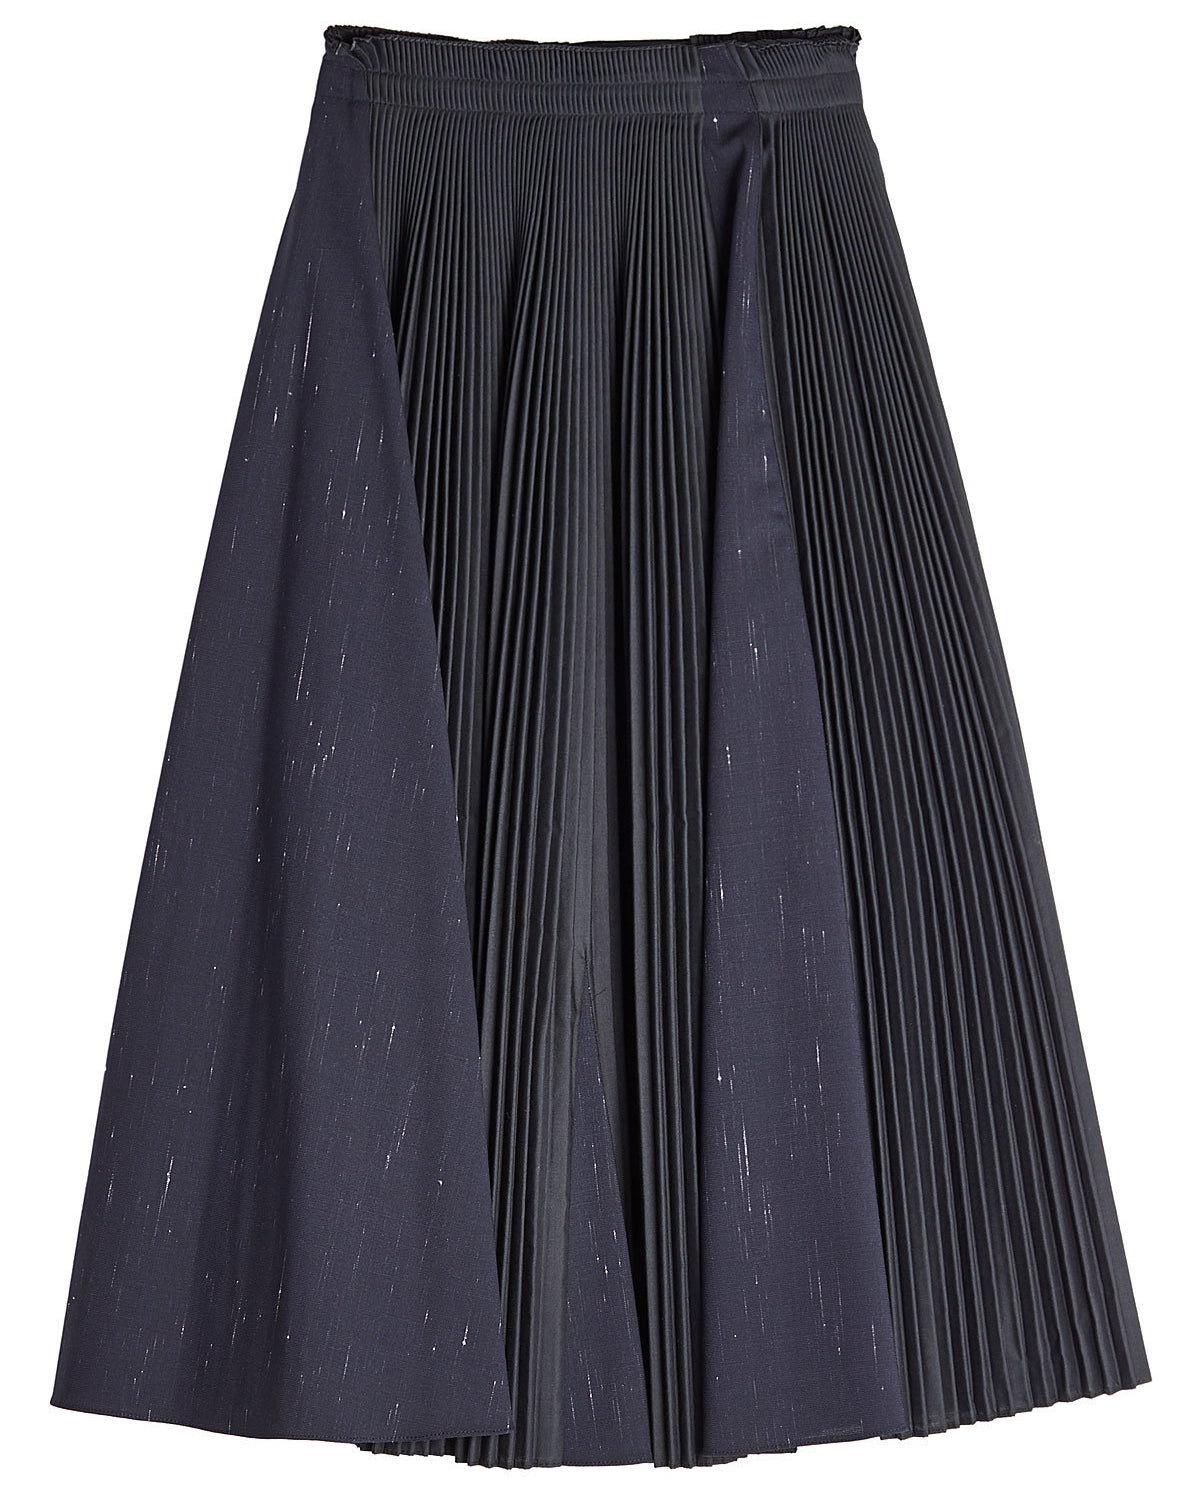 Jil Sander Navy - Pleated navy blue and black skirt